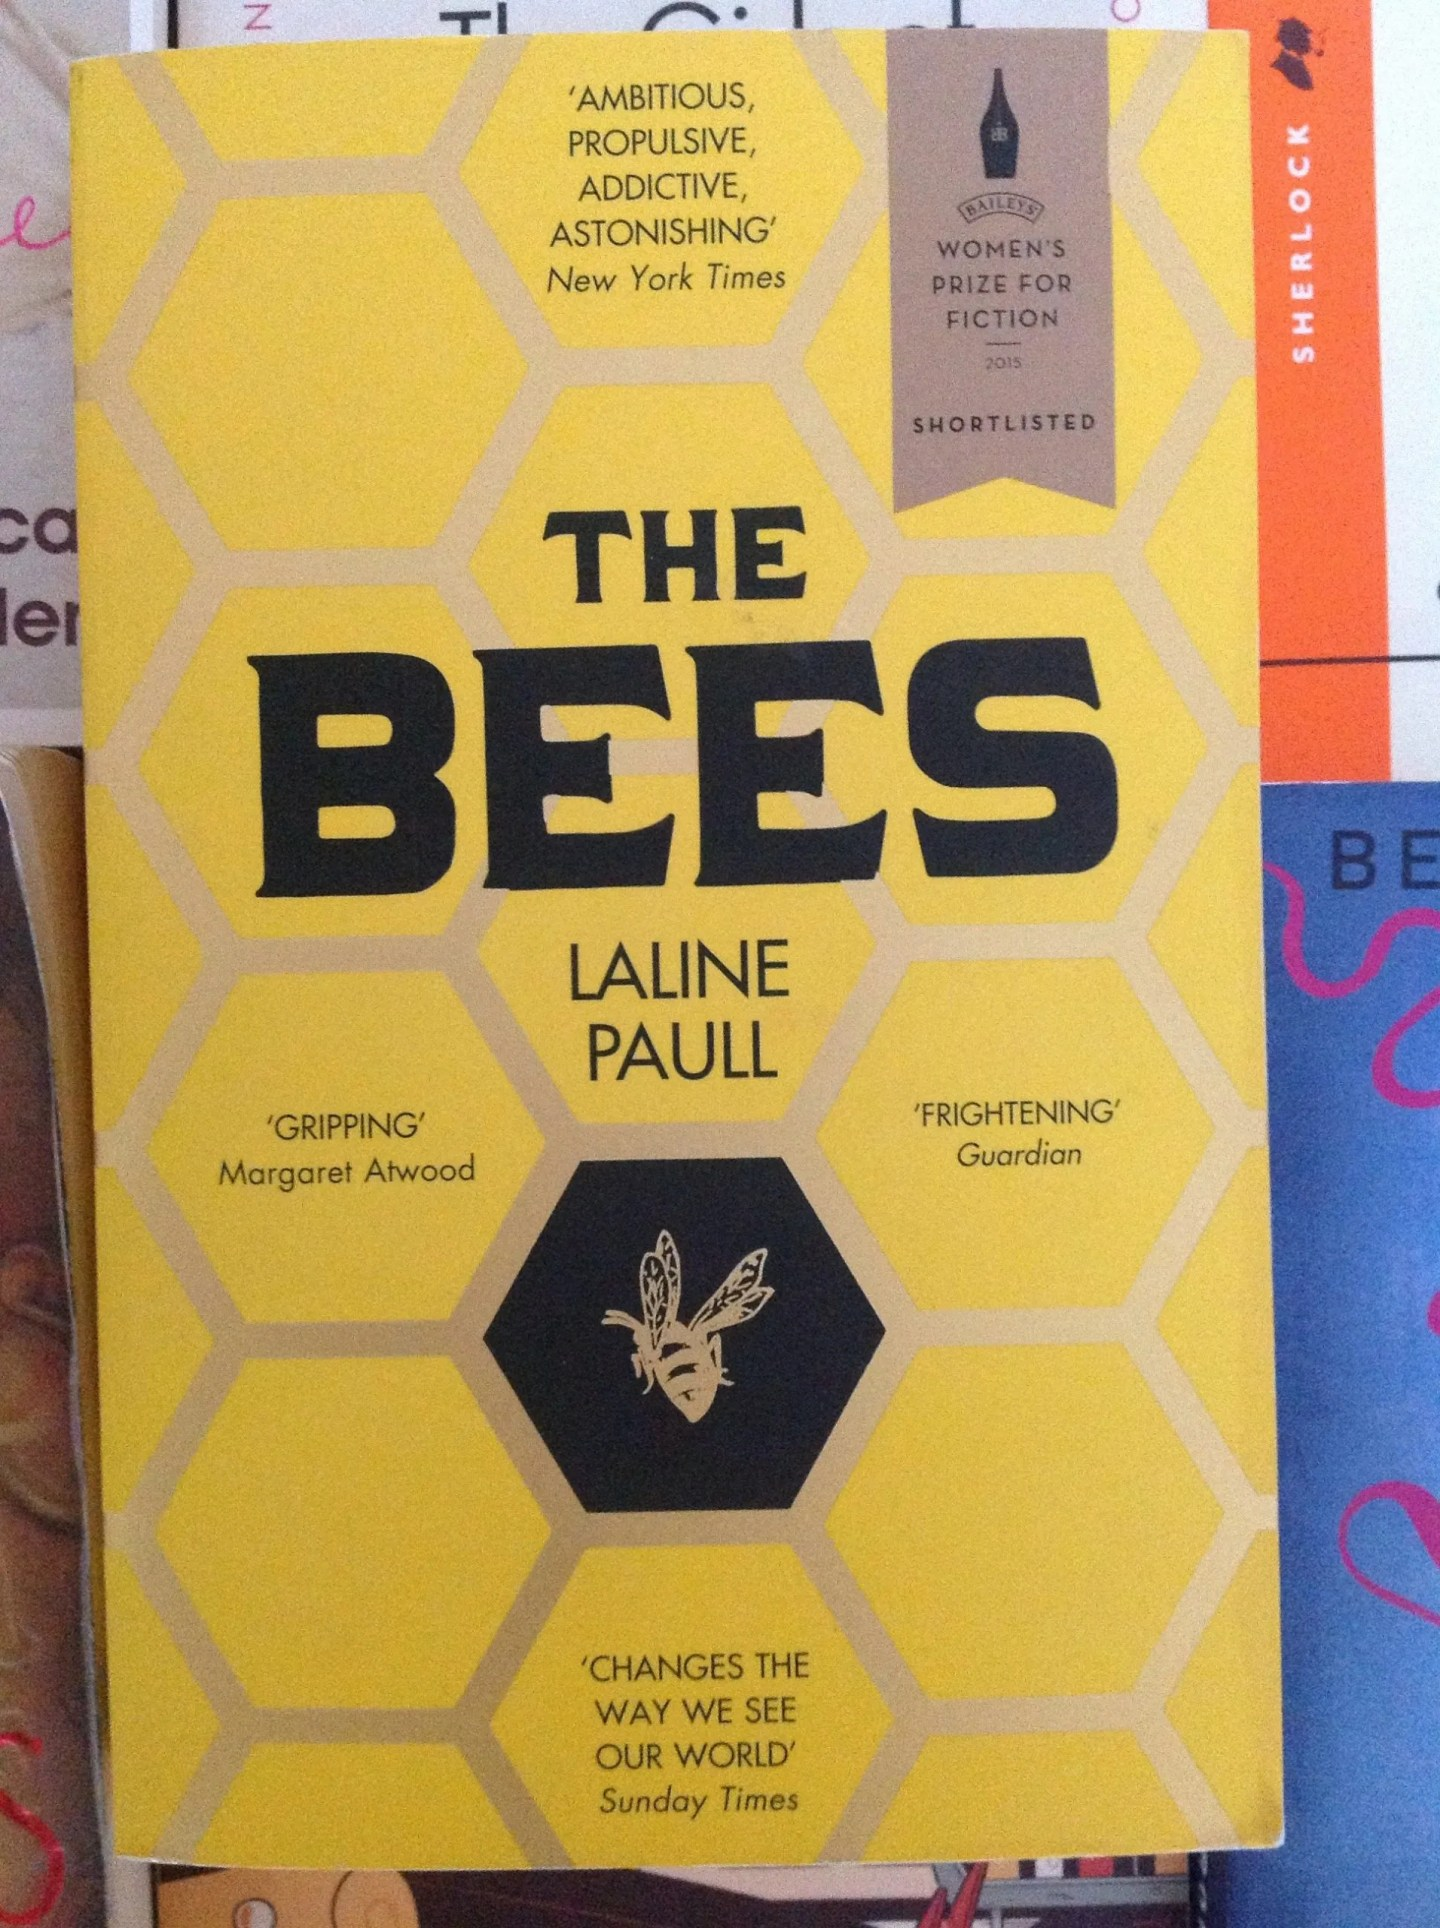 The Bees Laline Paull cover